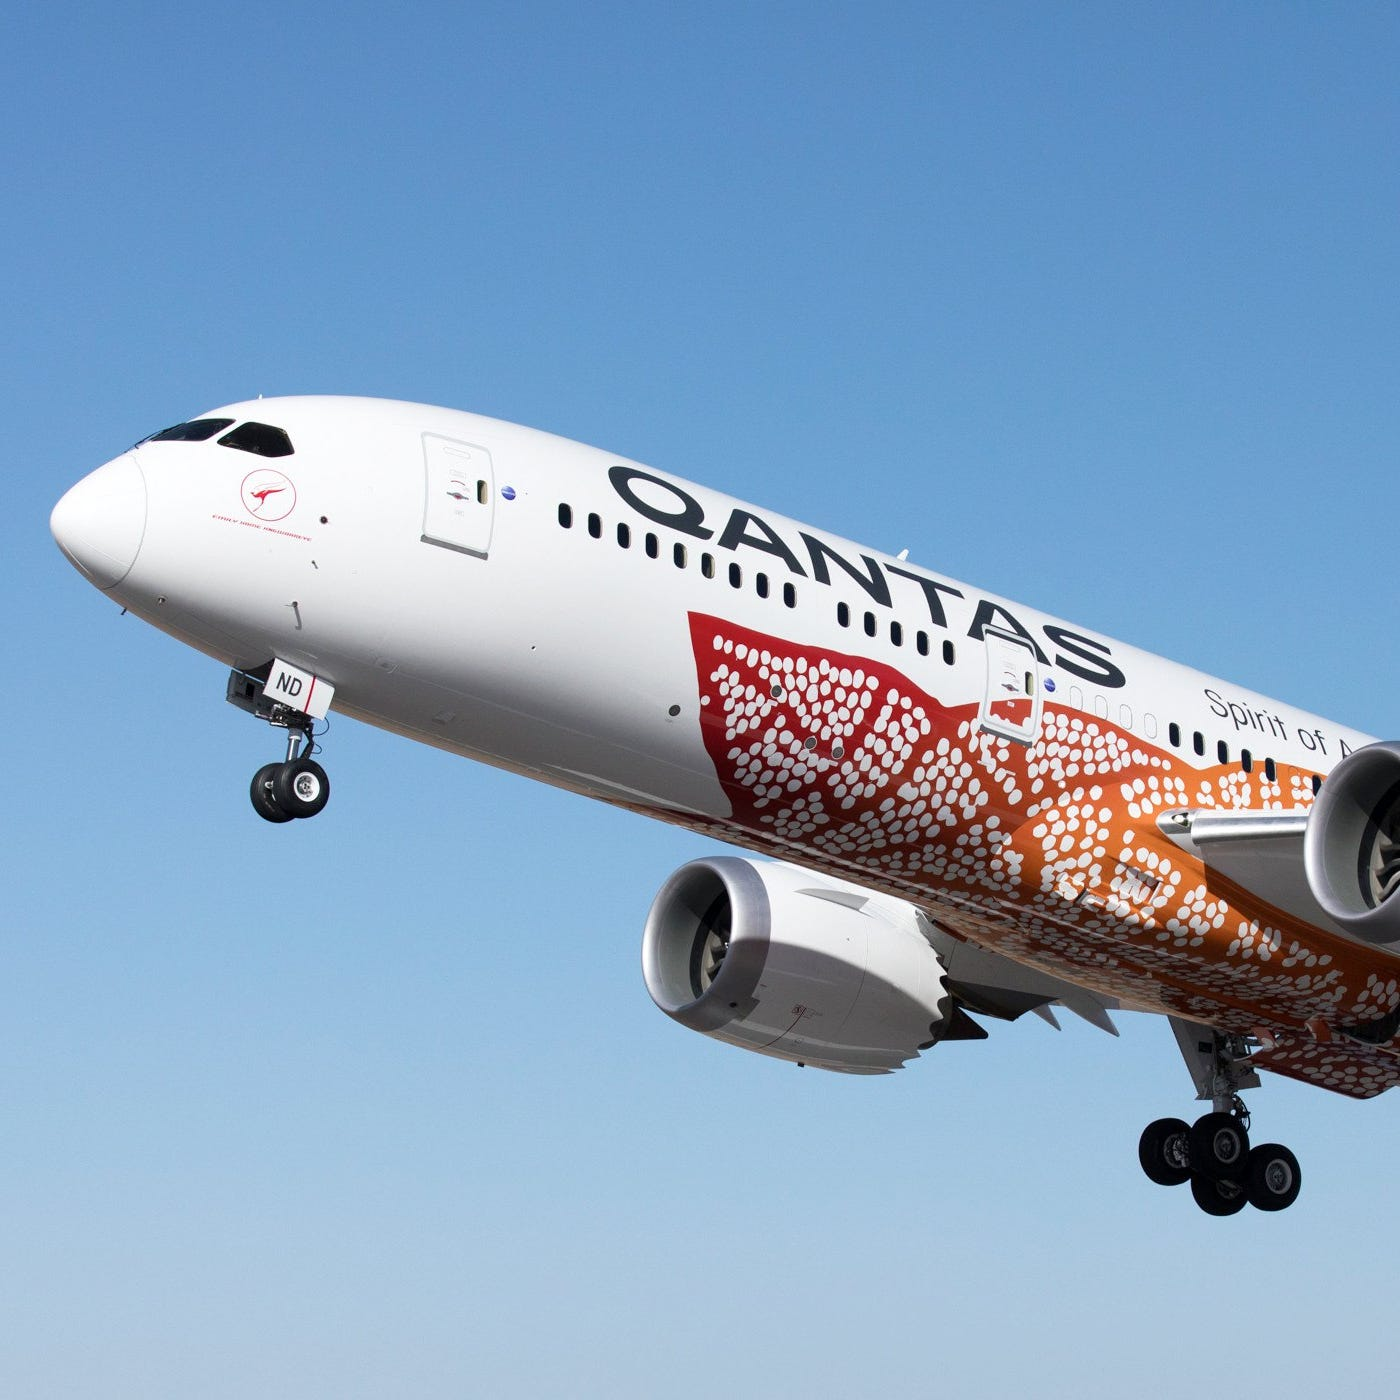 A handout photo made available by Australian carrier Qantas on March 24, 2018 shows Qantas 787-9 Dreamliner 'Emily Kame Kngwarreye'.